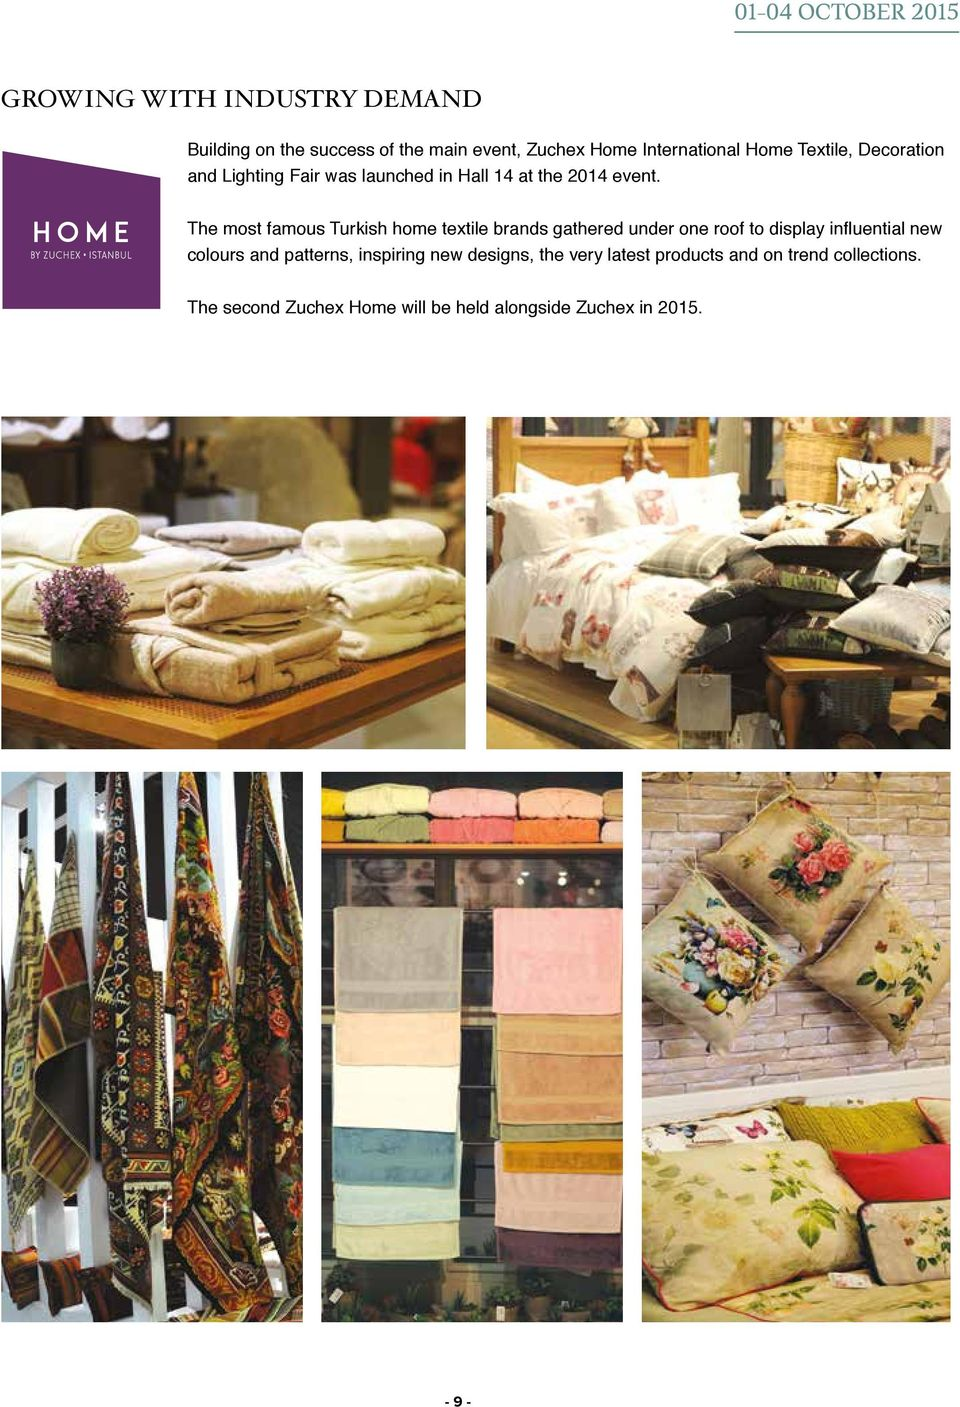 The most famous Turkish home textile brands gathered under one roof to display influential new colours and